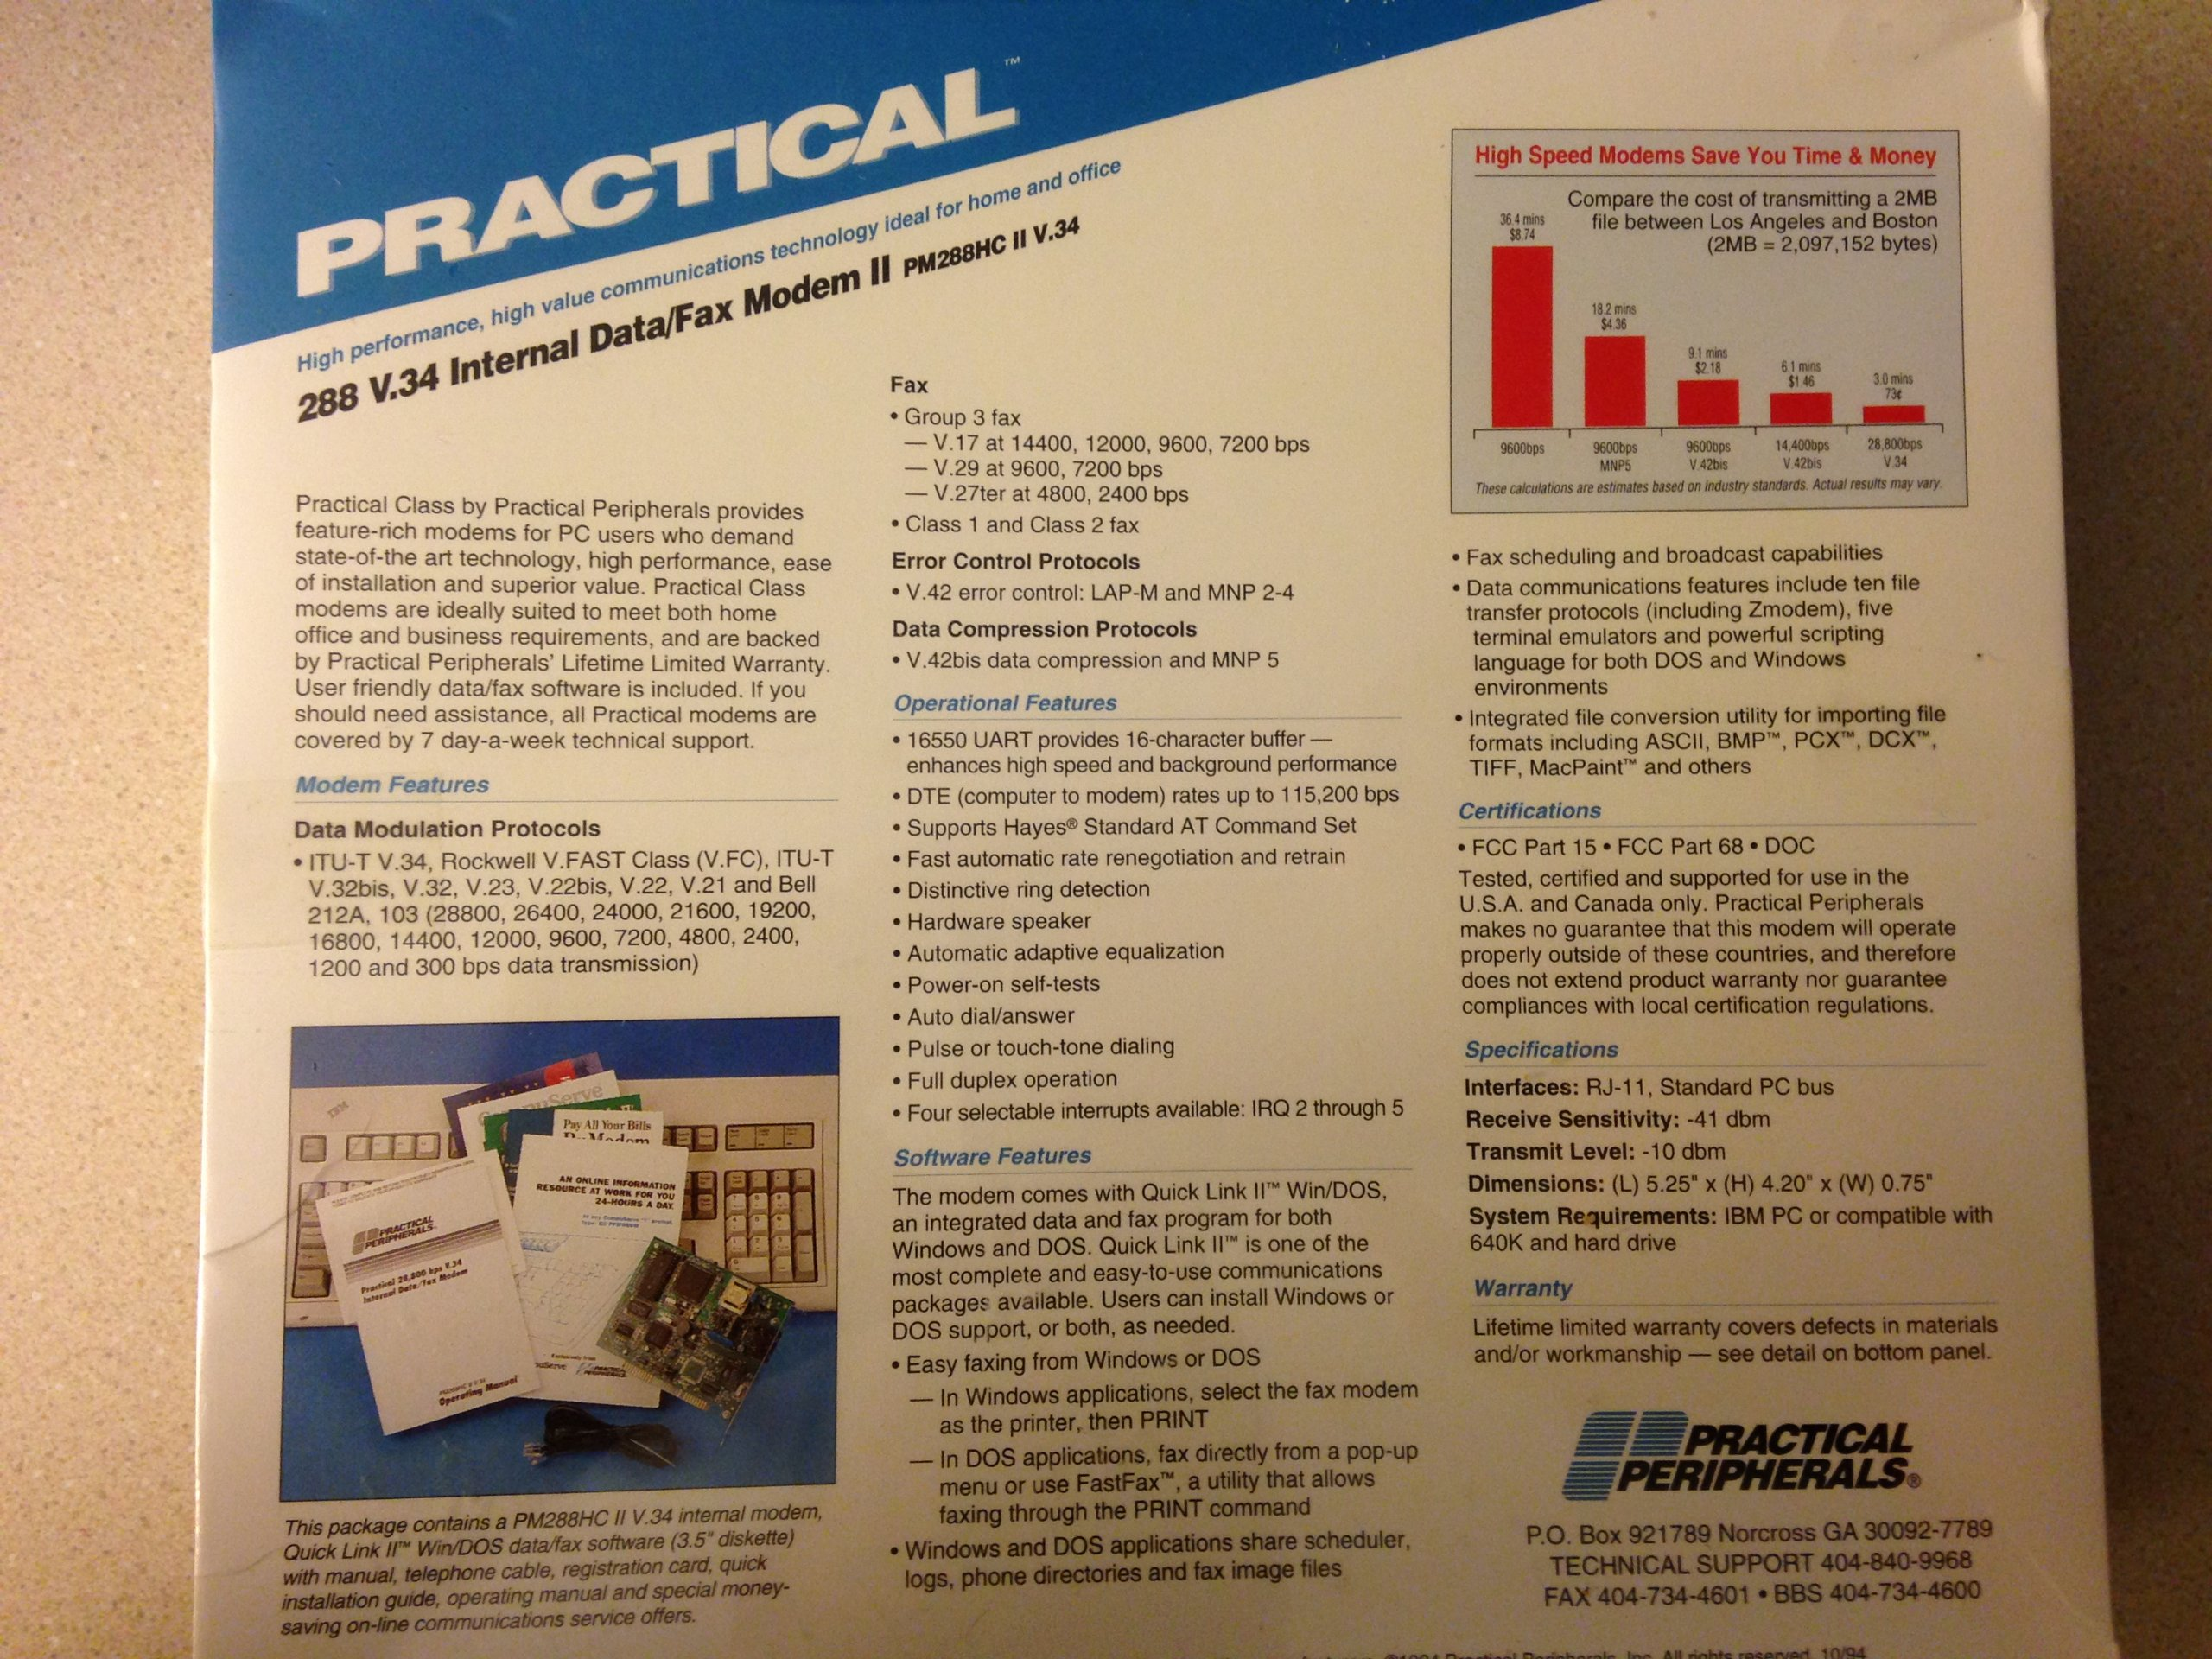 Practical Peripherals 288 V.34 Internal Data / Fax Modem 2 by Practical Peripherals, Inc. (Image #2)